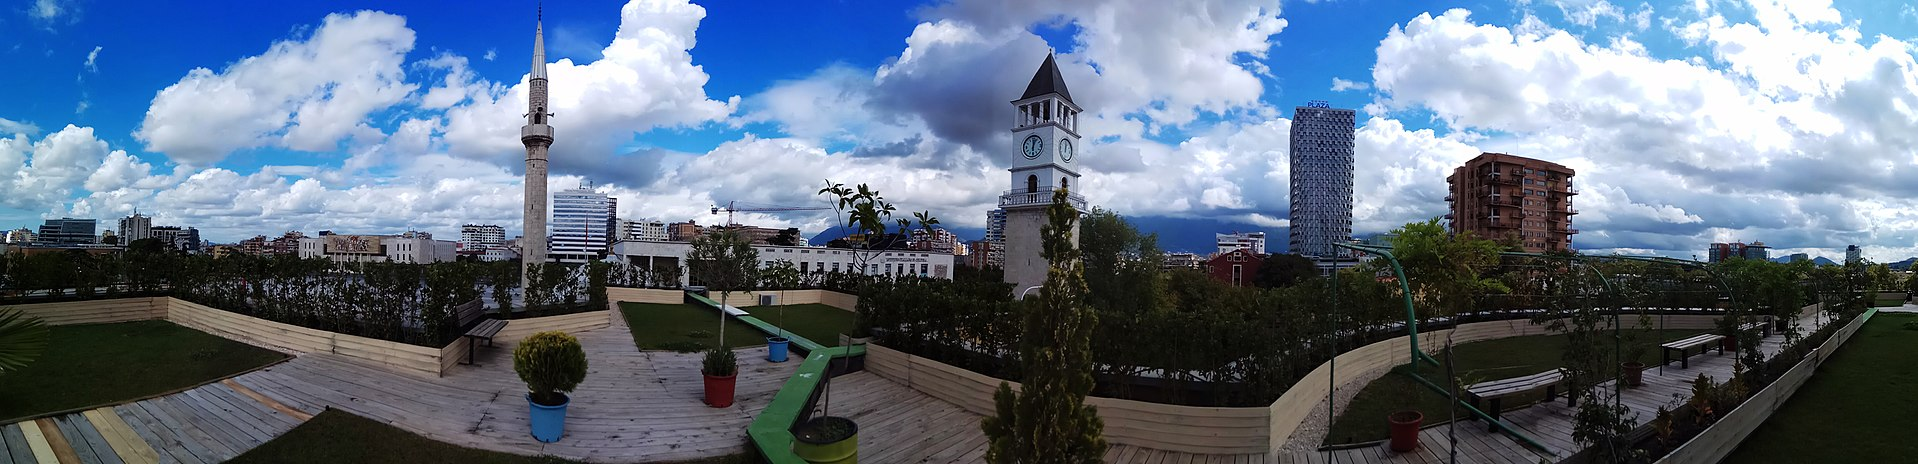 Panorama view of Tirana square - 1.jpeg